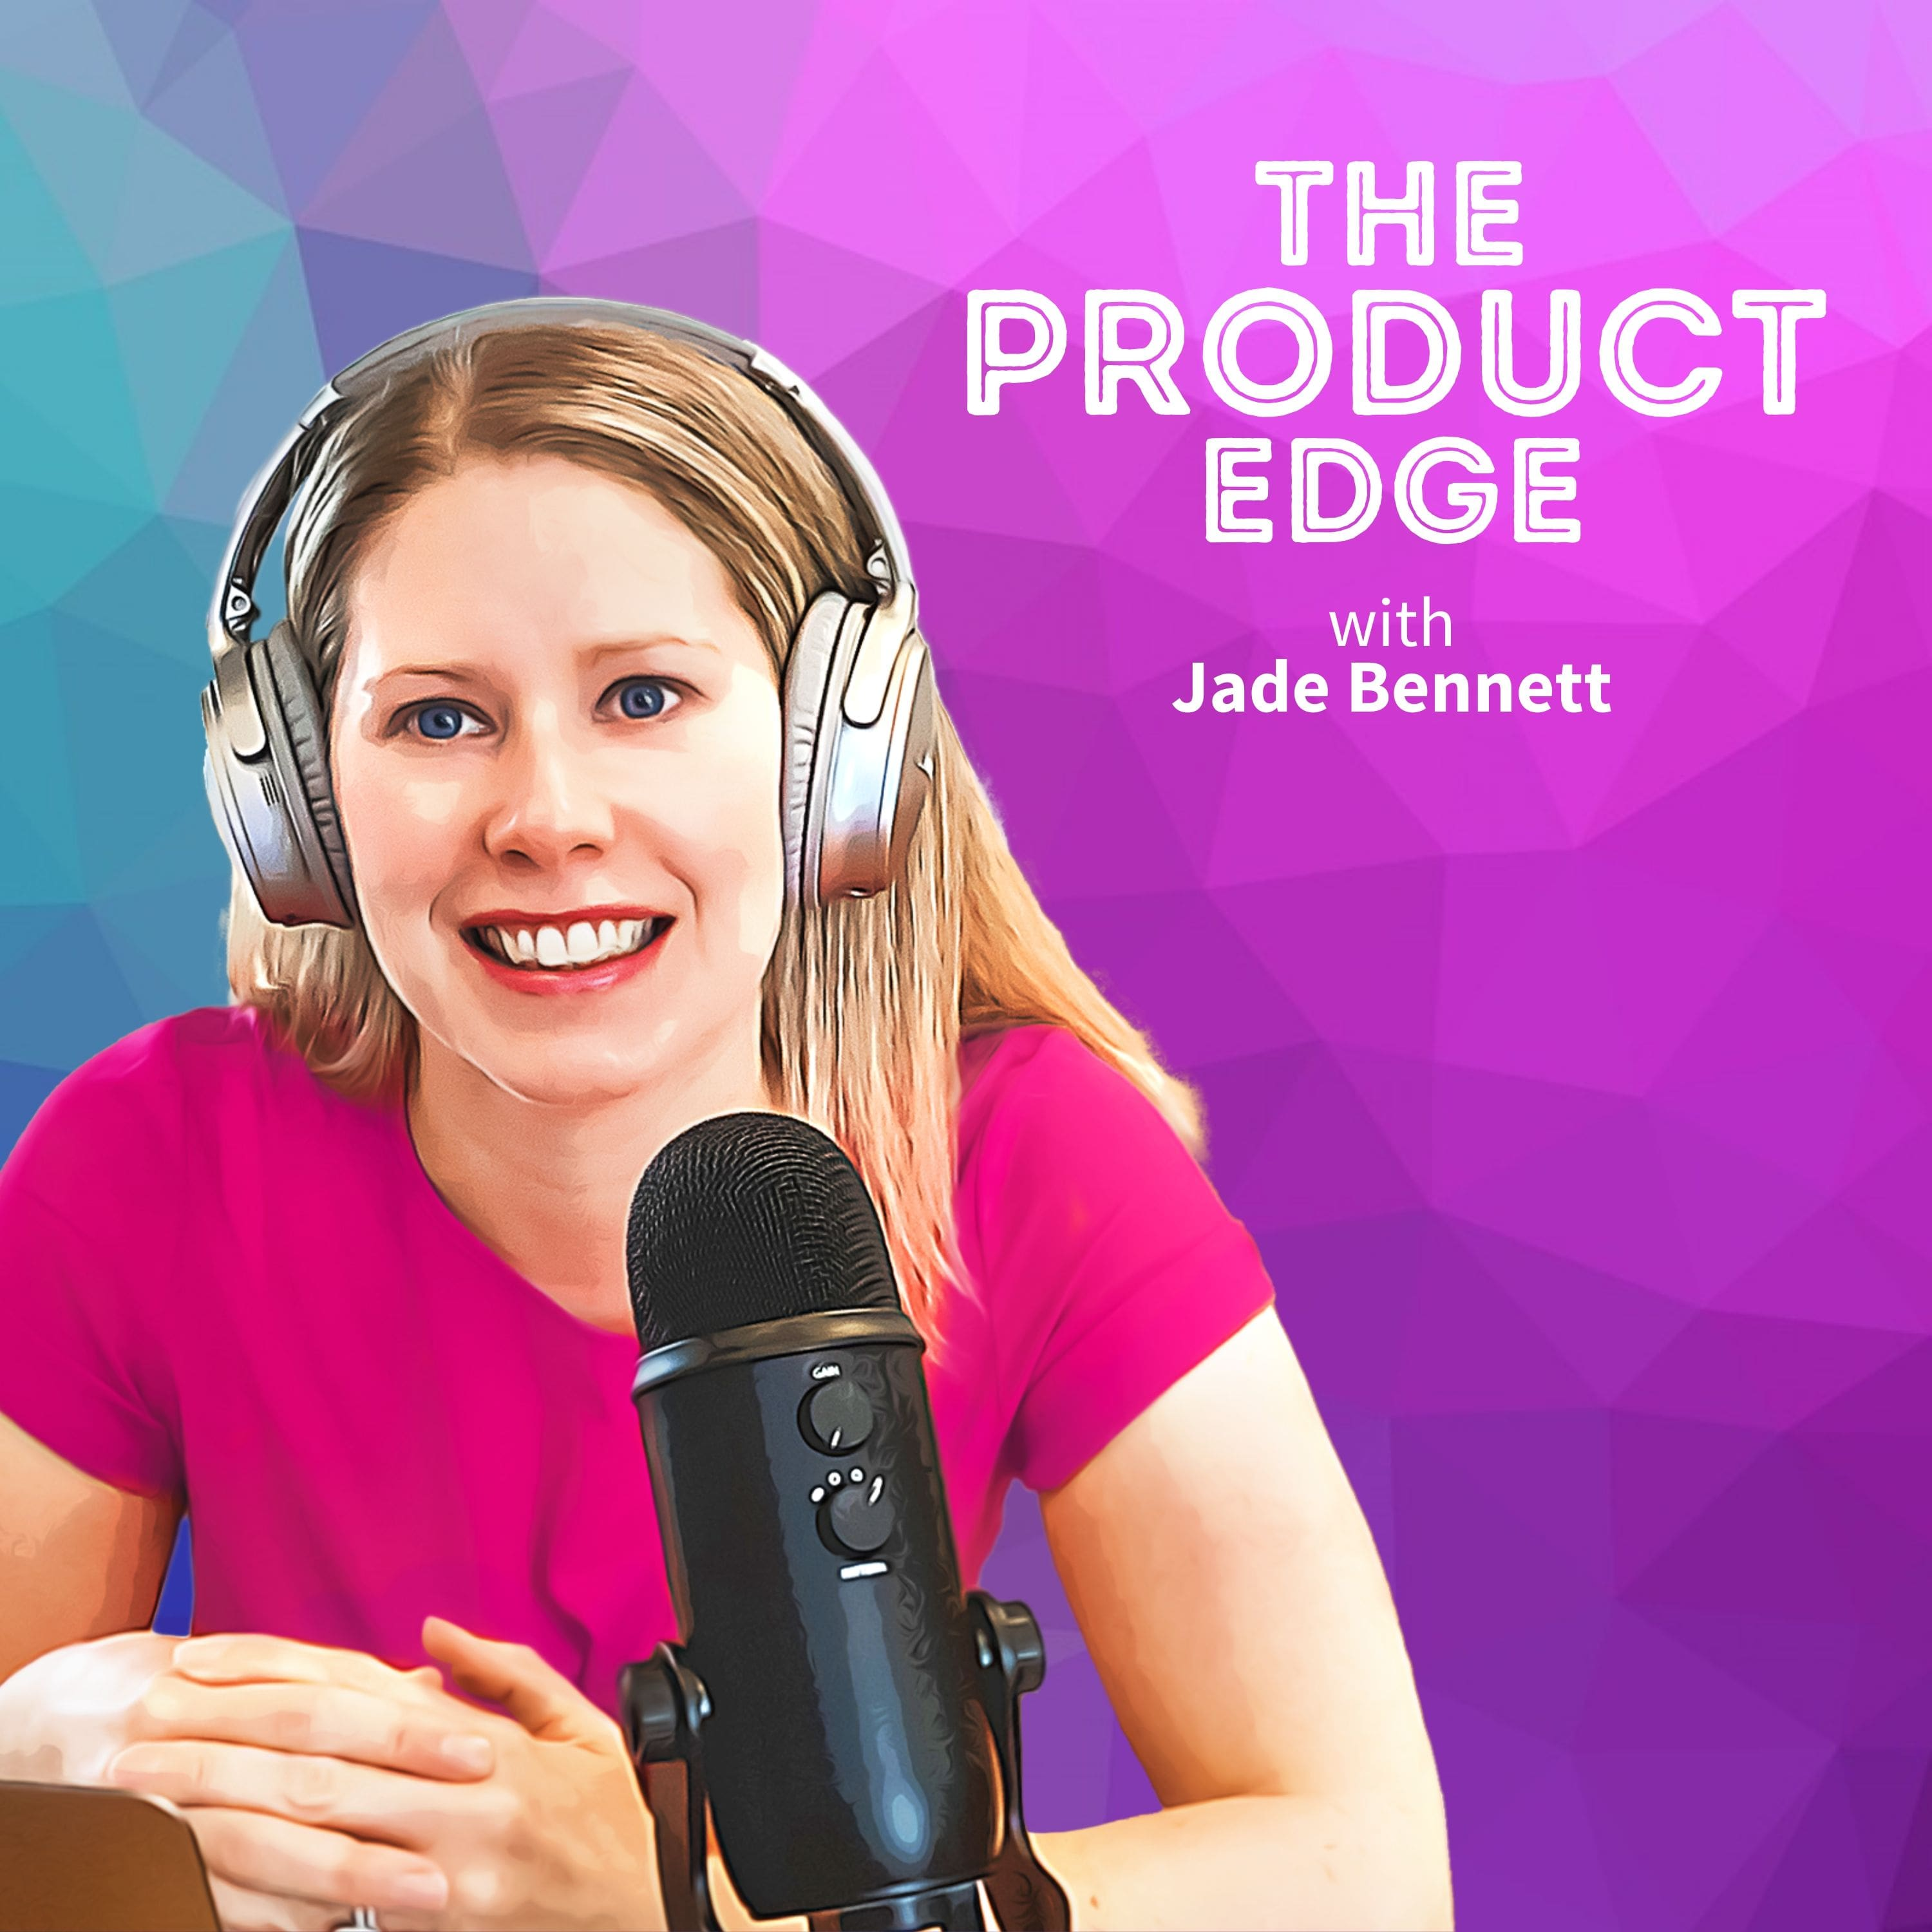 Artwork for podcast The Product Edge